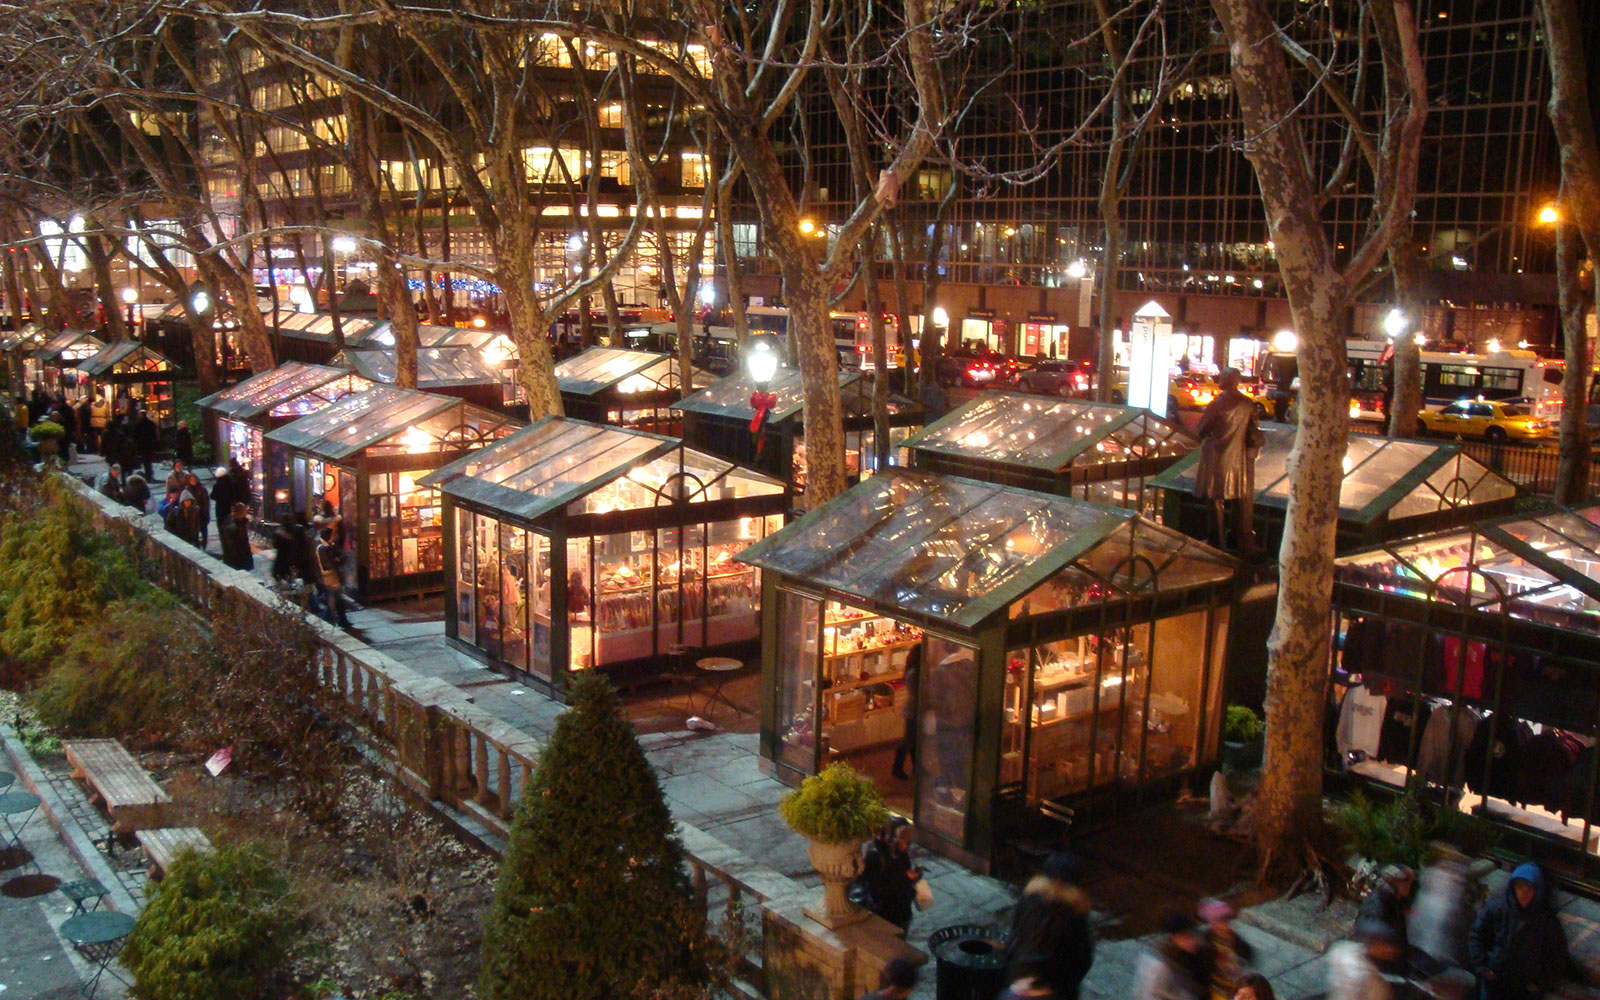 Winter Village at Bryant Park, New York City